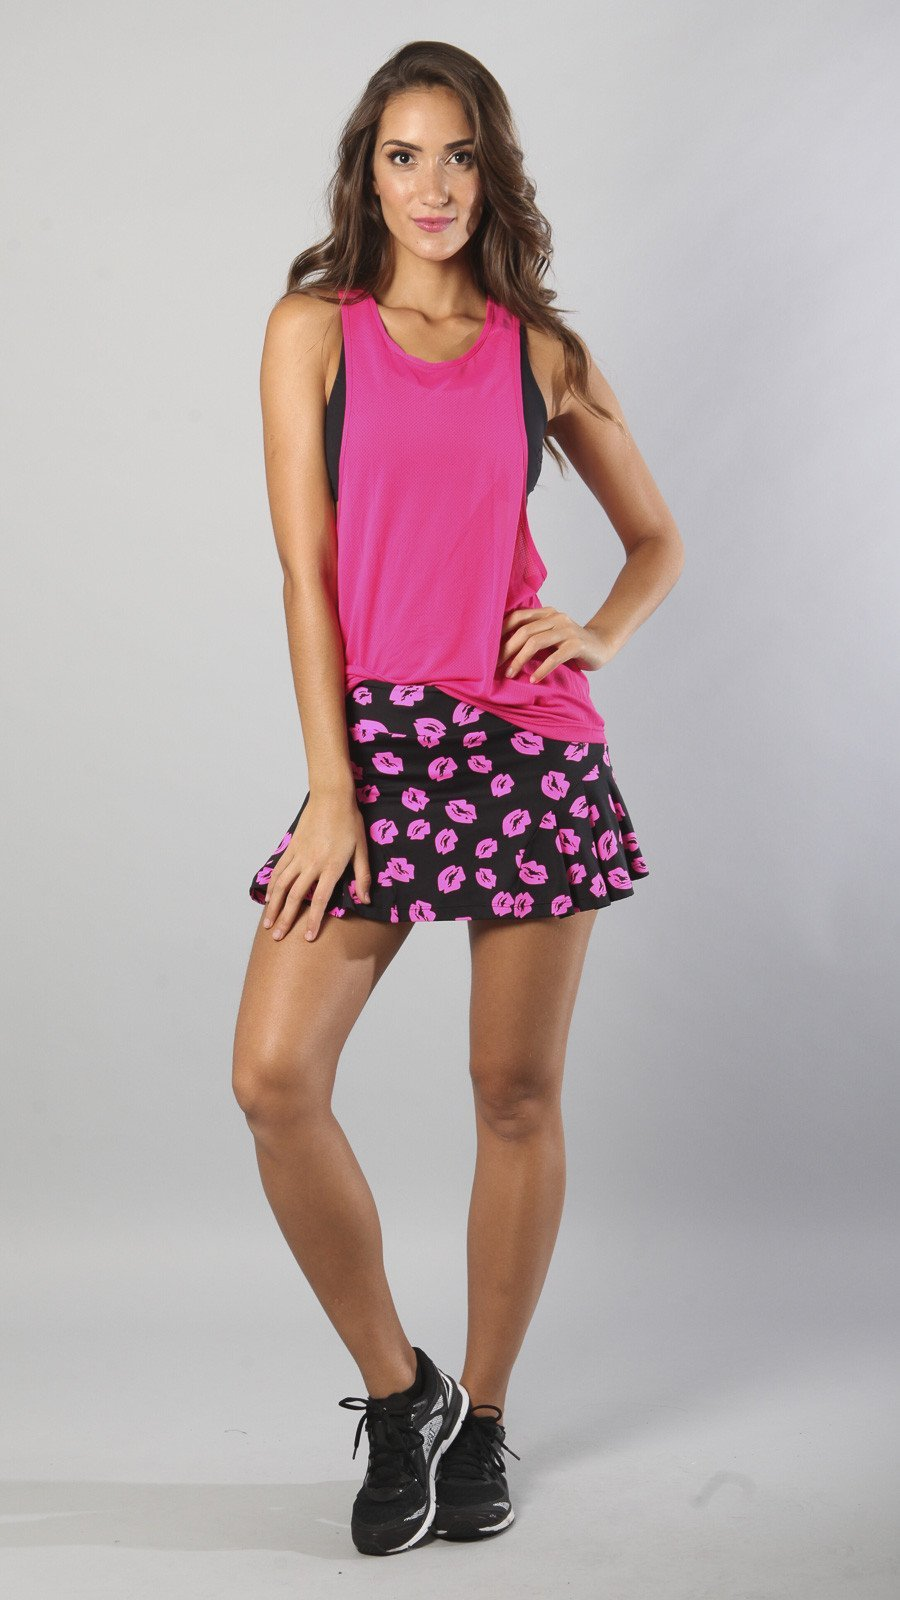 Designer Kisses Pink and Black Skort S520 - Equilibrium Activewear - Image 3